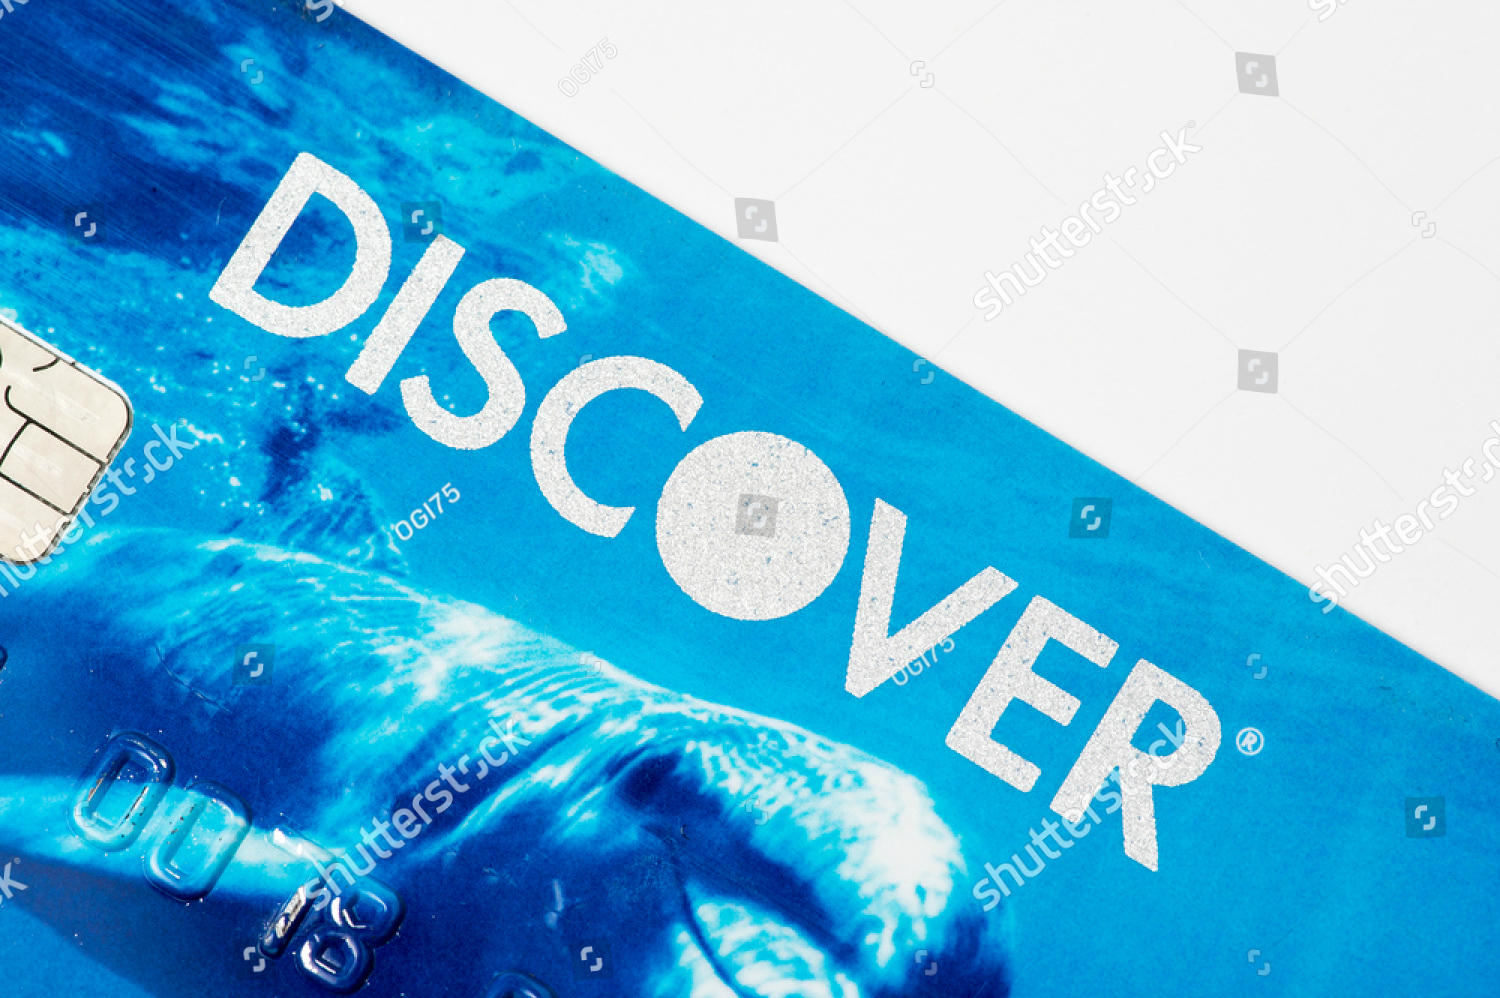 Discover Credit Card Designs Best Of 8 Discover Card Designs